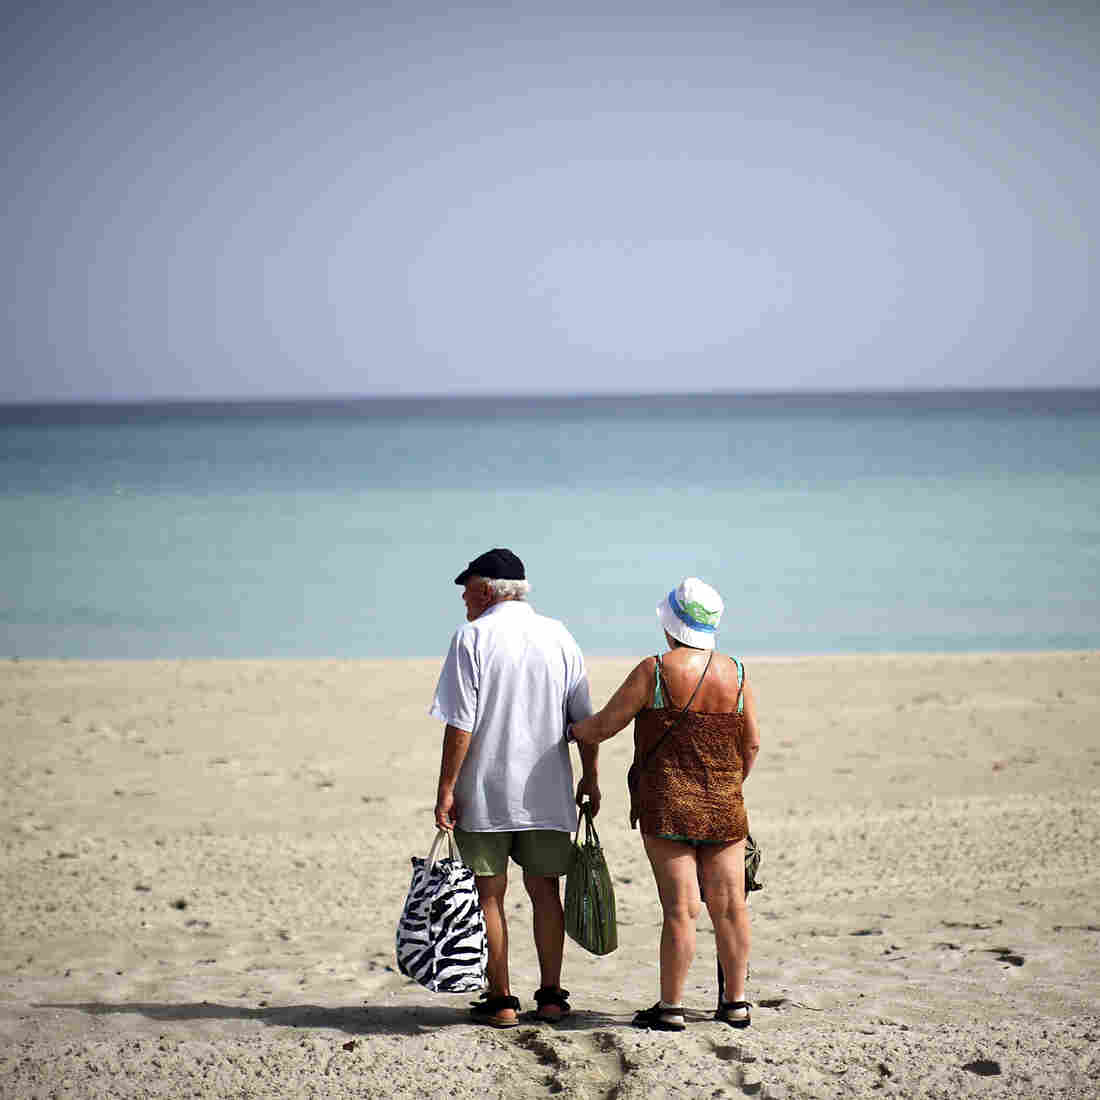 A couple walks on the beach in the resort area of Varadero, Cuba. Varadero is home to upscale hotels and resorts that cater to foreign tourists, but there aren't yet enough to handle a potential influx of Americans.